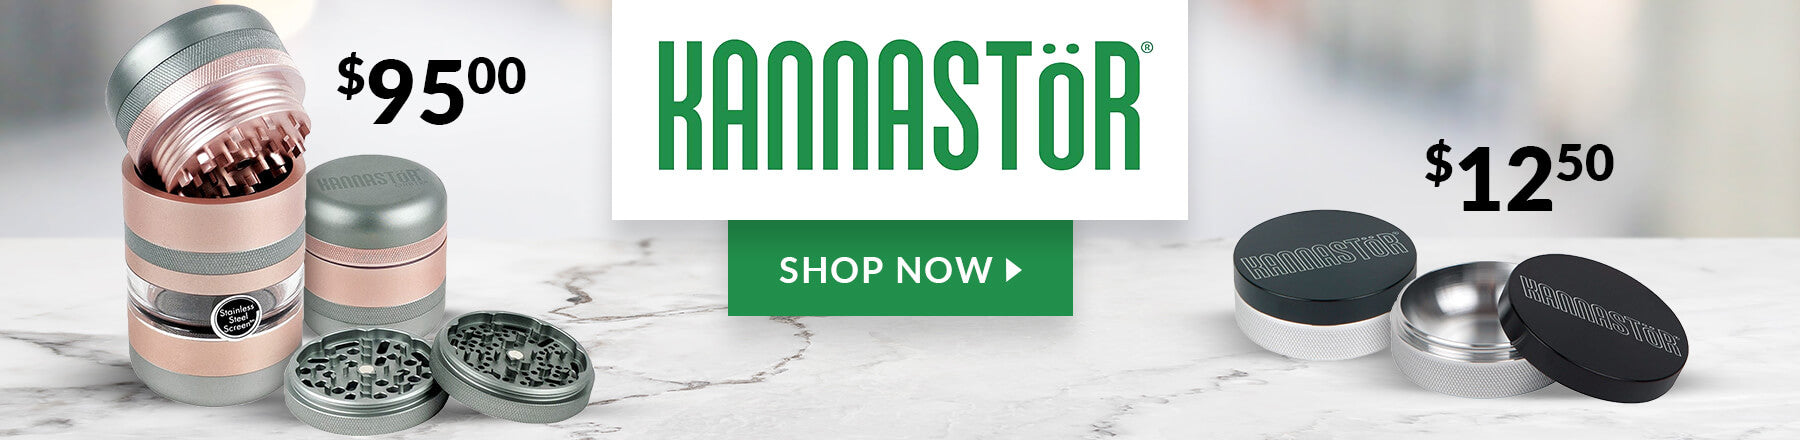 Kannastor Grinders On Sale